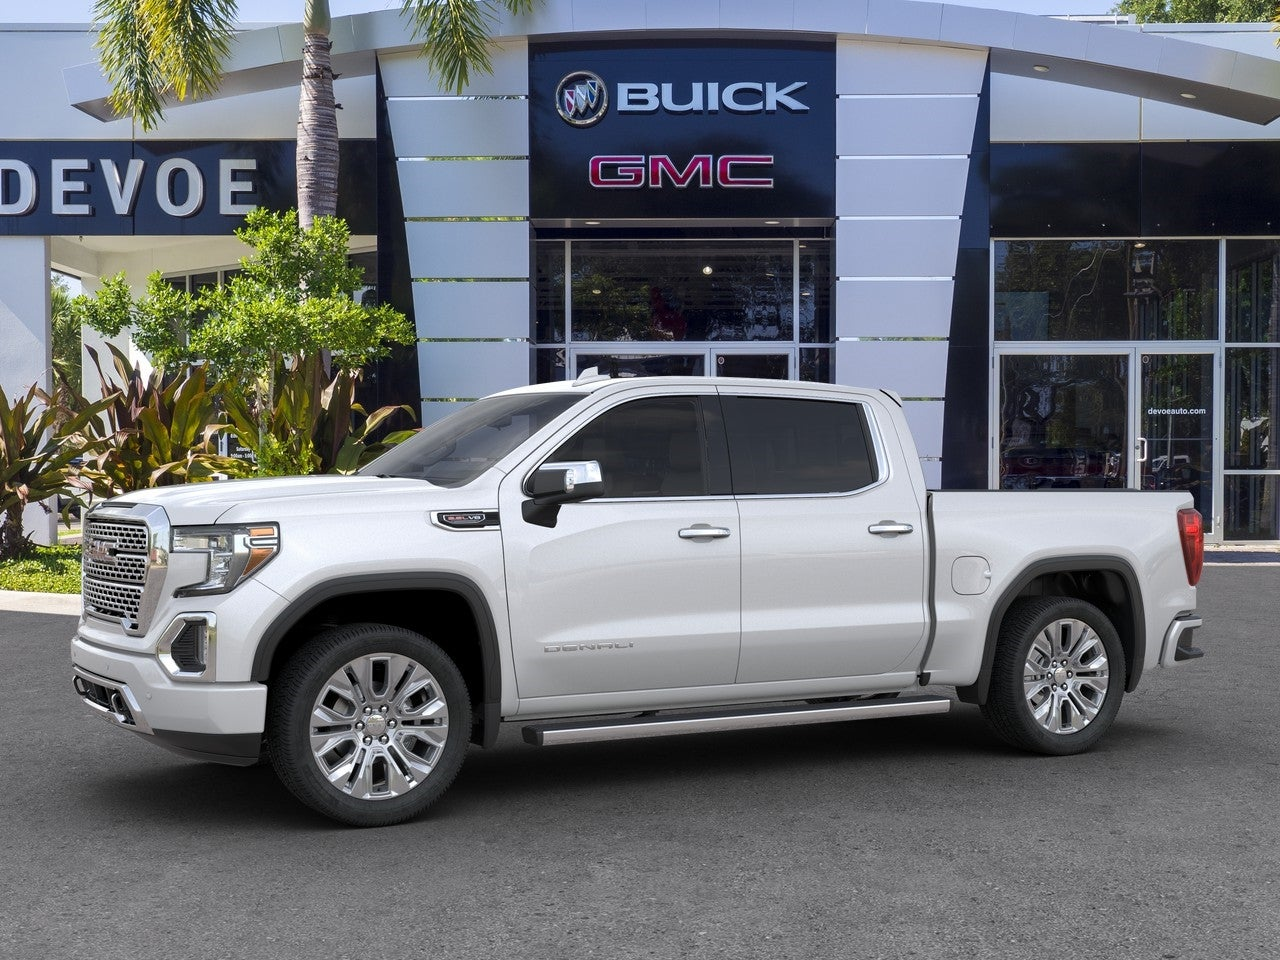 2020 GMC Sierra 1500 Crew Cab 4x4, Pickup #T20433 - photo 3